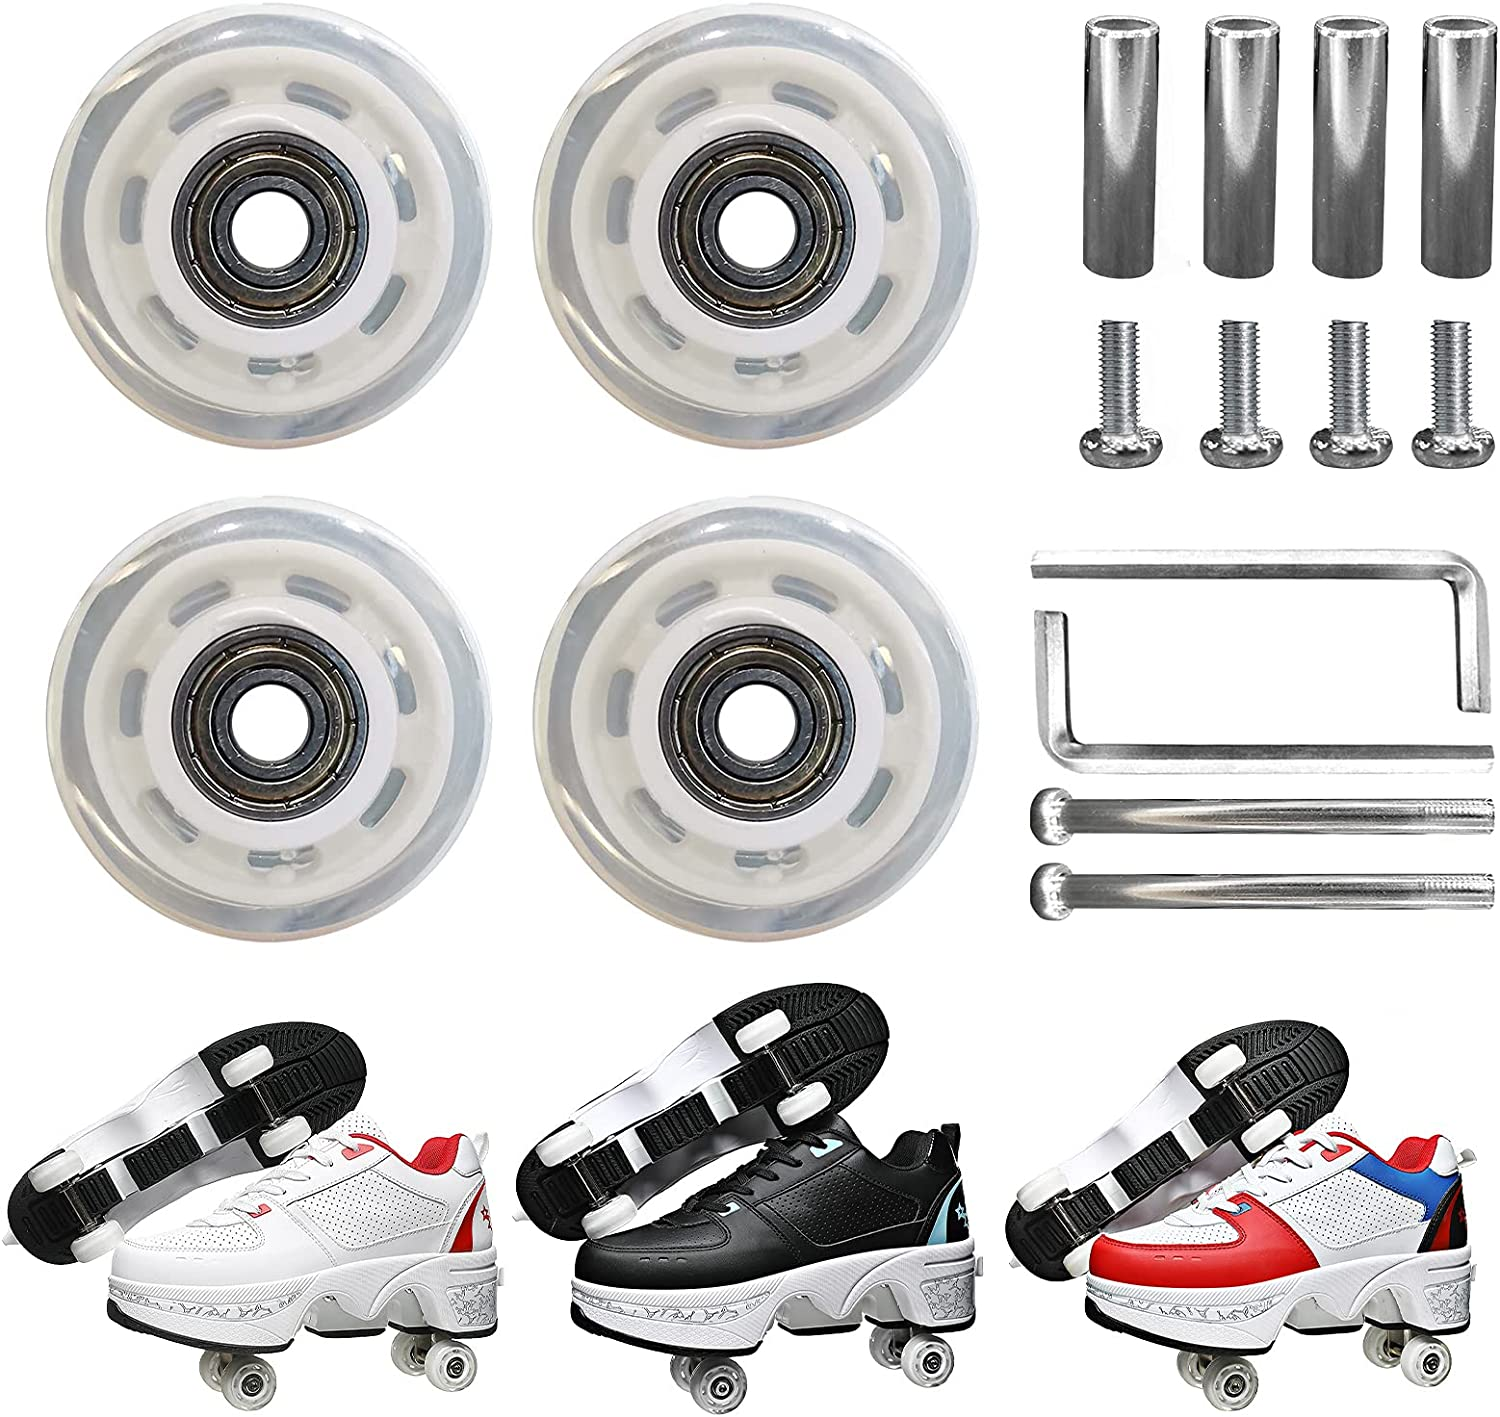 YUNWANG Durable Wear-Resistant PU Accessorie Deluxe Replacements Max 87% OFF Wheels